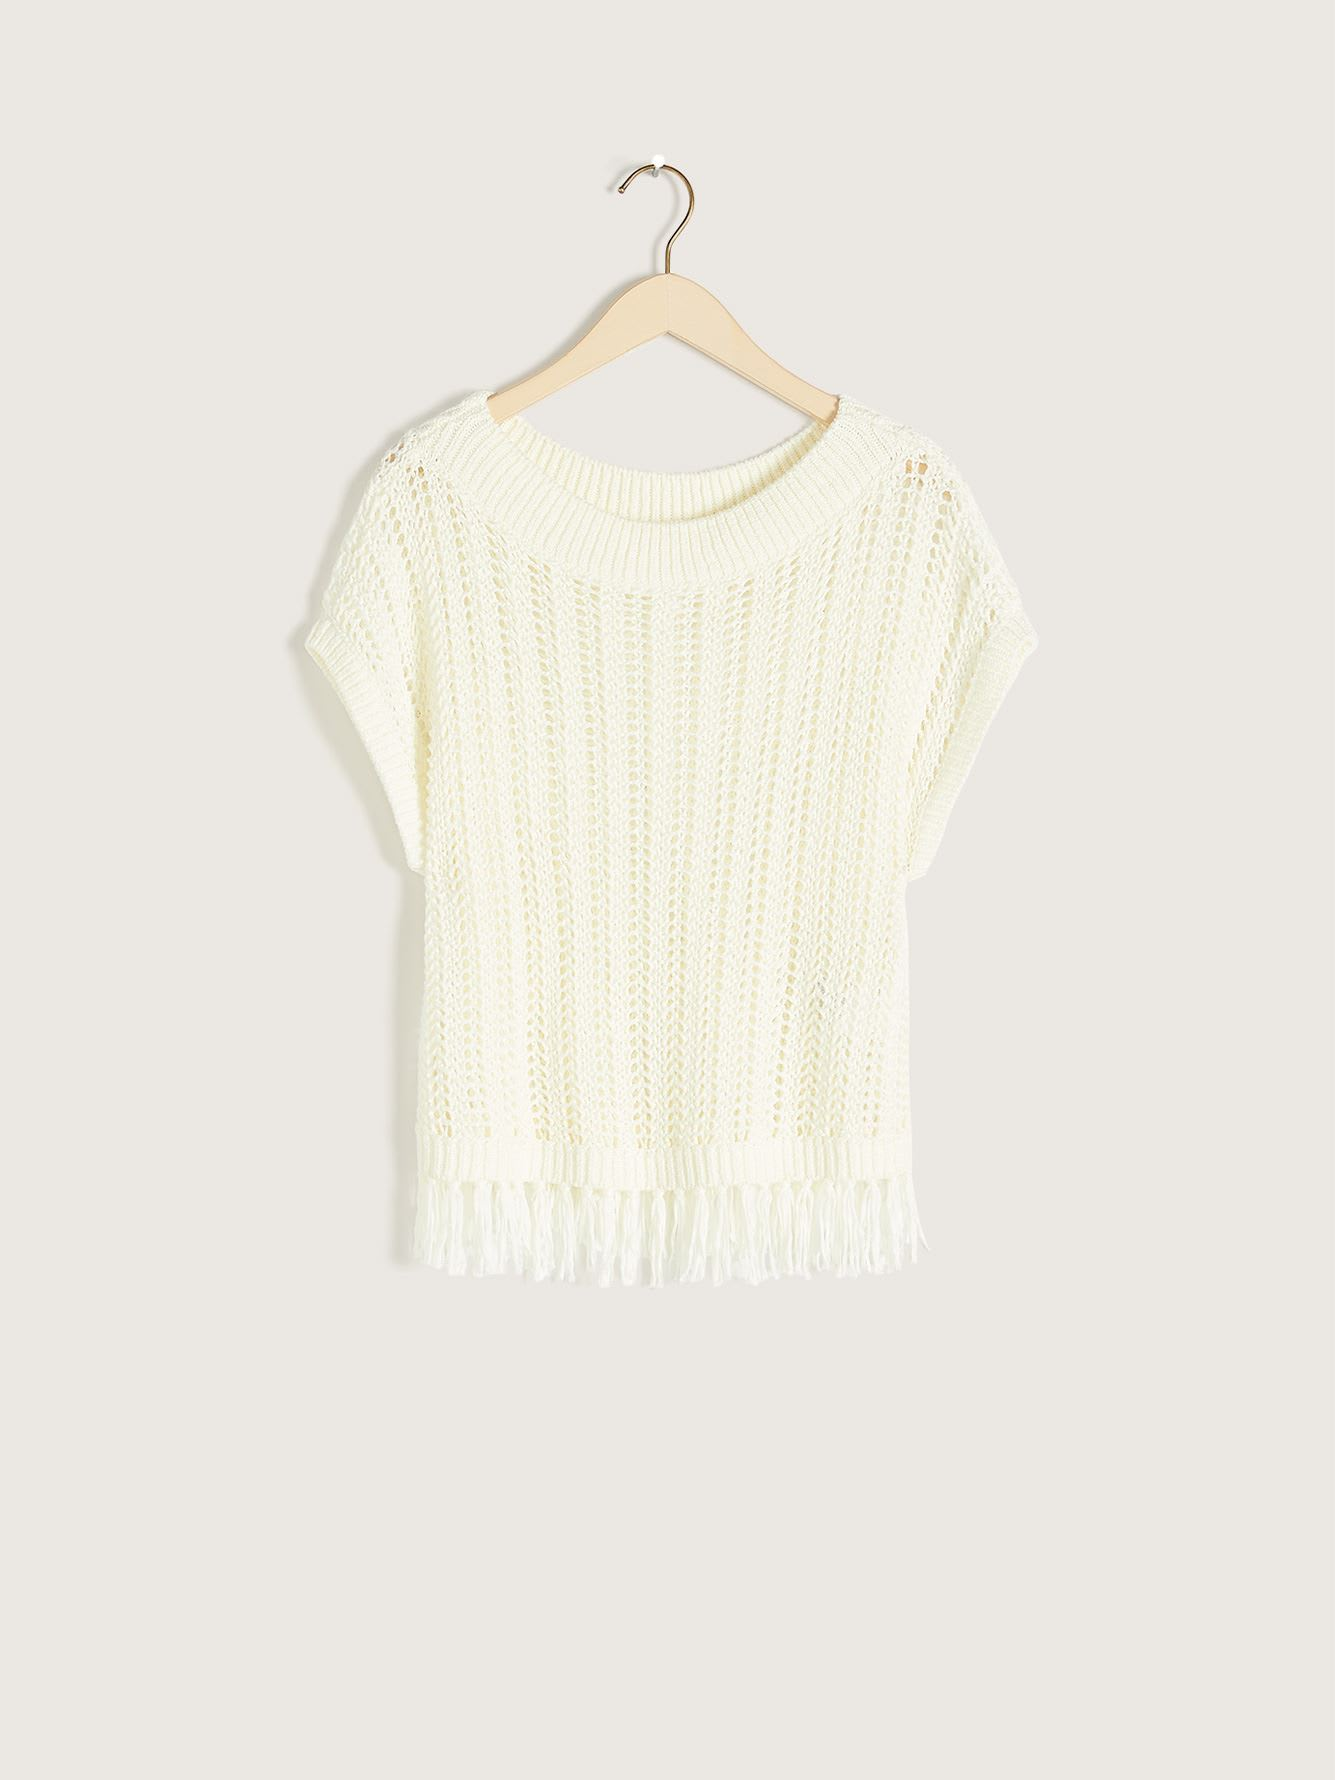 Crochet Sweater with Fringed Hem - Addition Elle